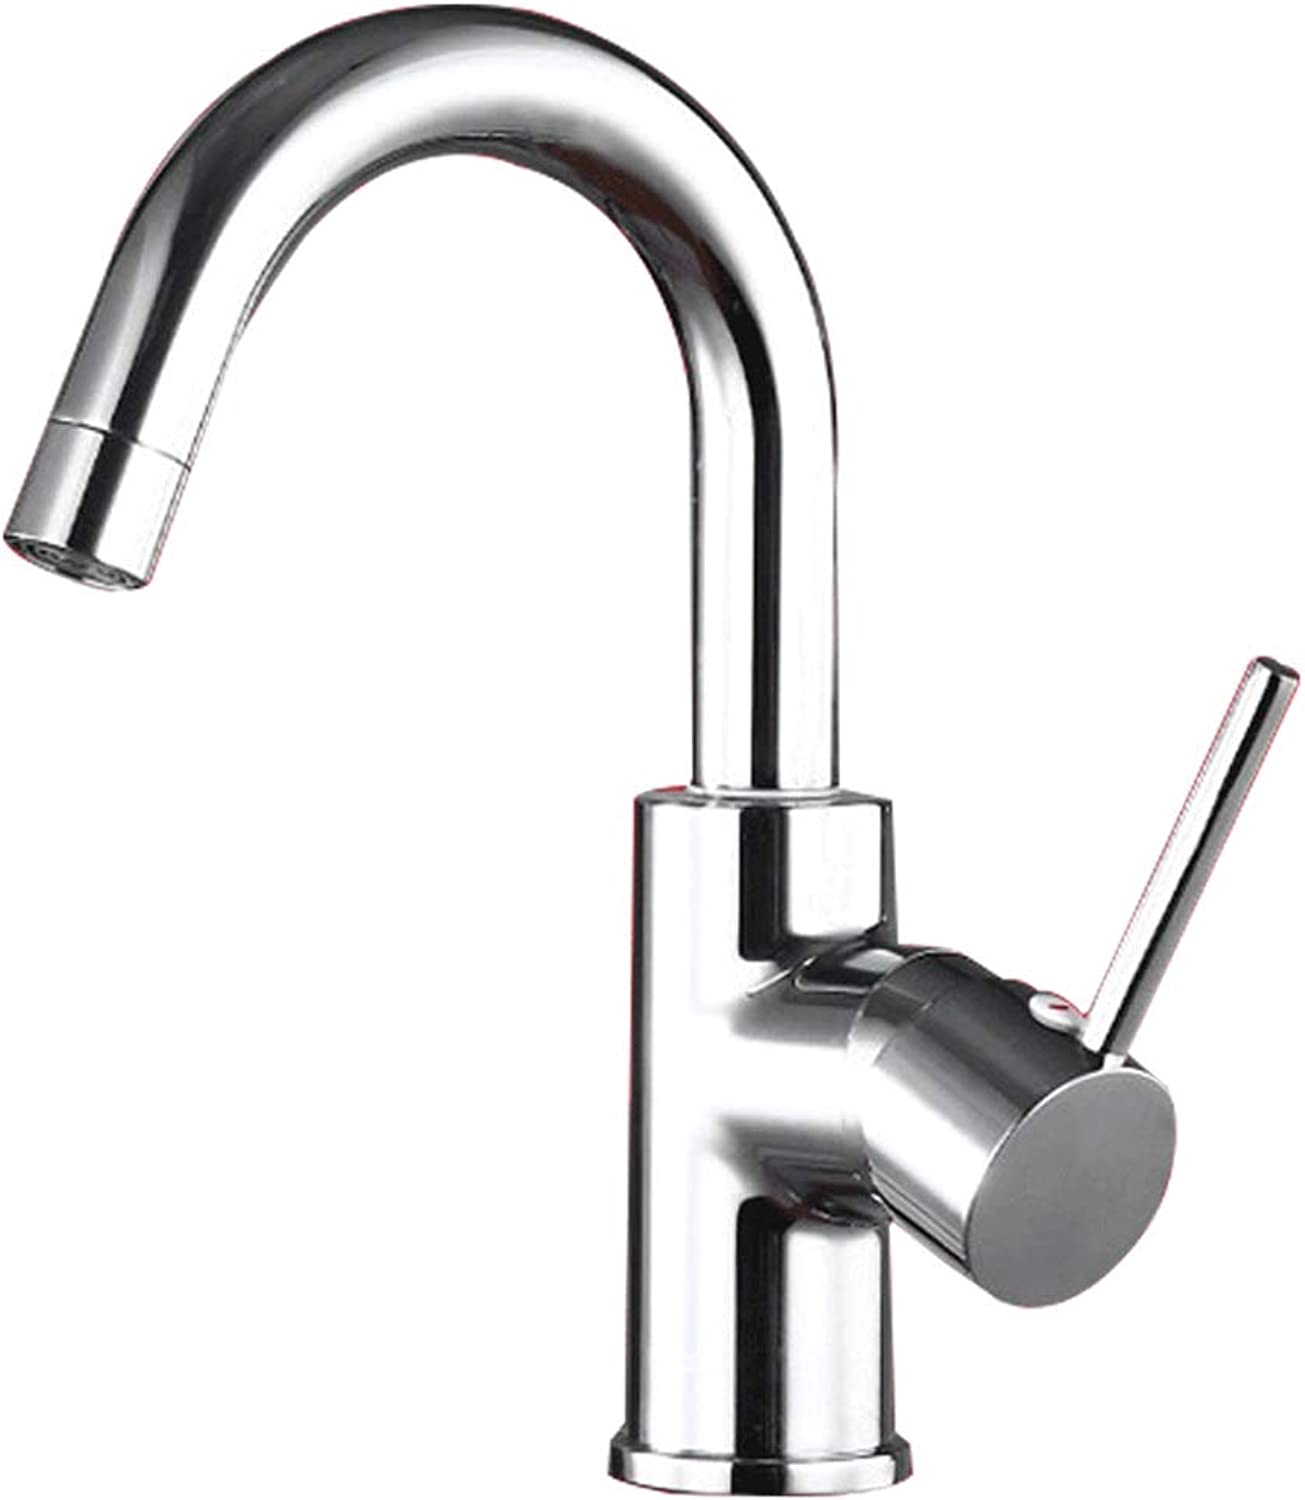 Tap Bathroom Taps, Copper Faucet Washbasin Faucet Hot And Cold Faucet Bathroom redating Basin Faucet Splash Head